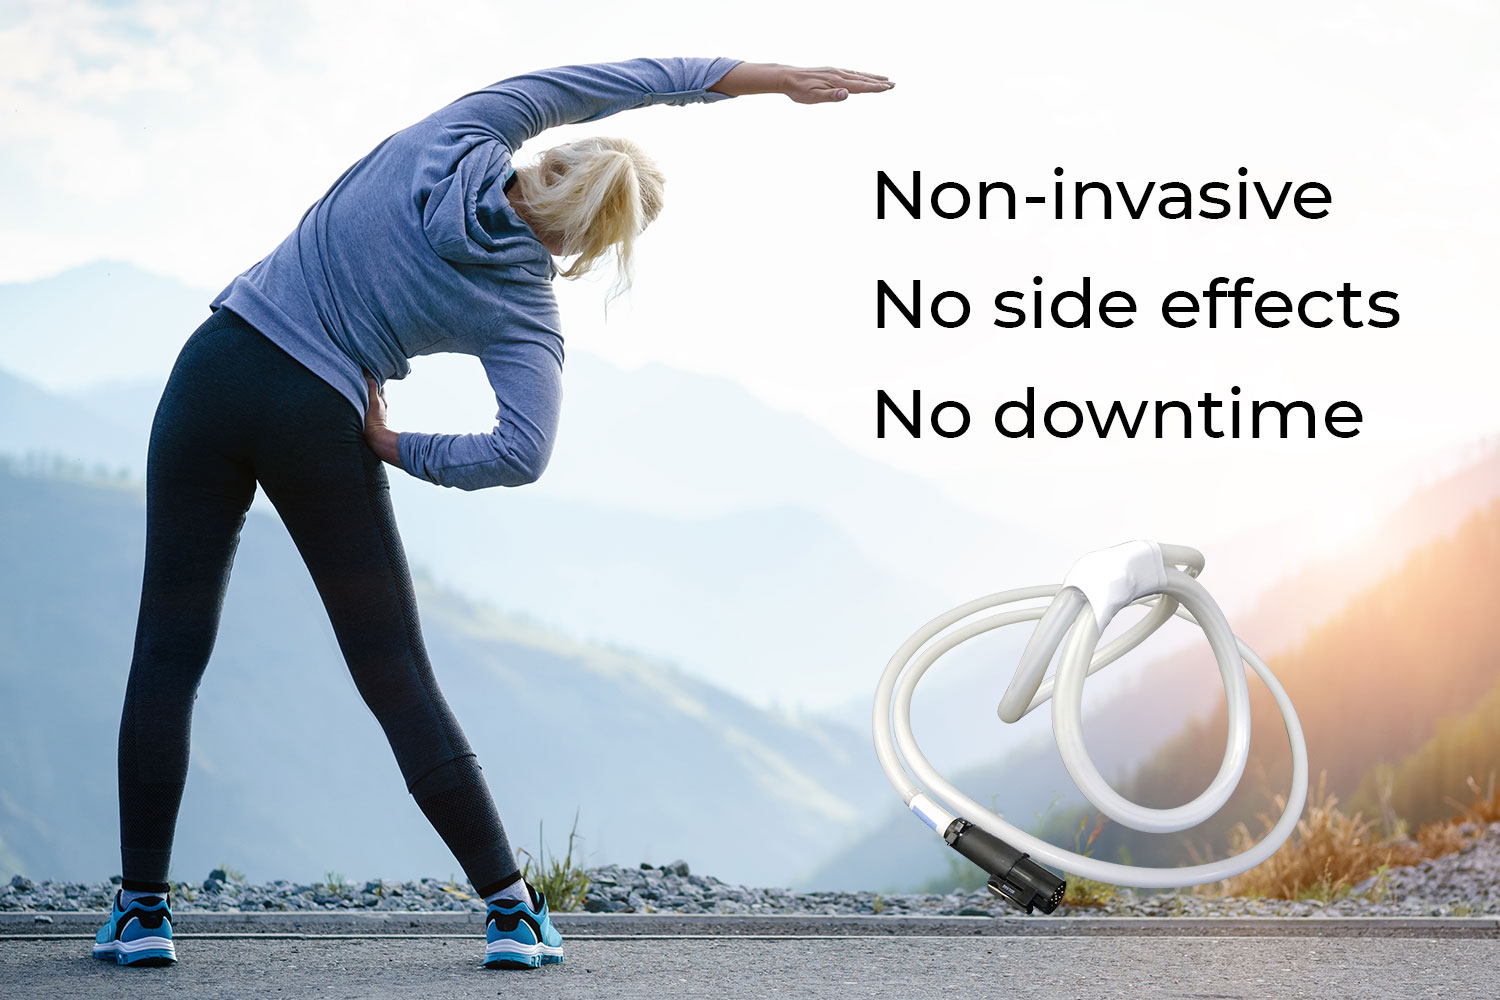 Non-invasive, no side effects, no downtime